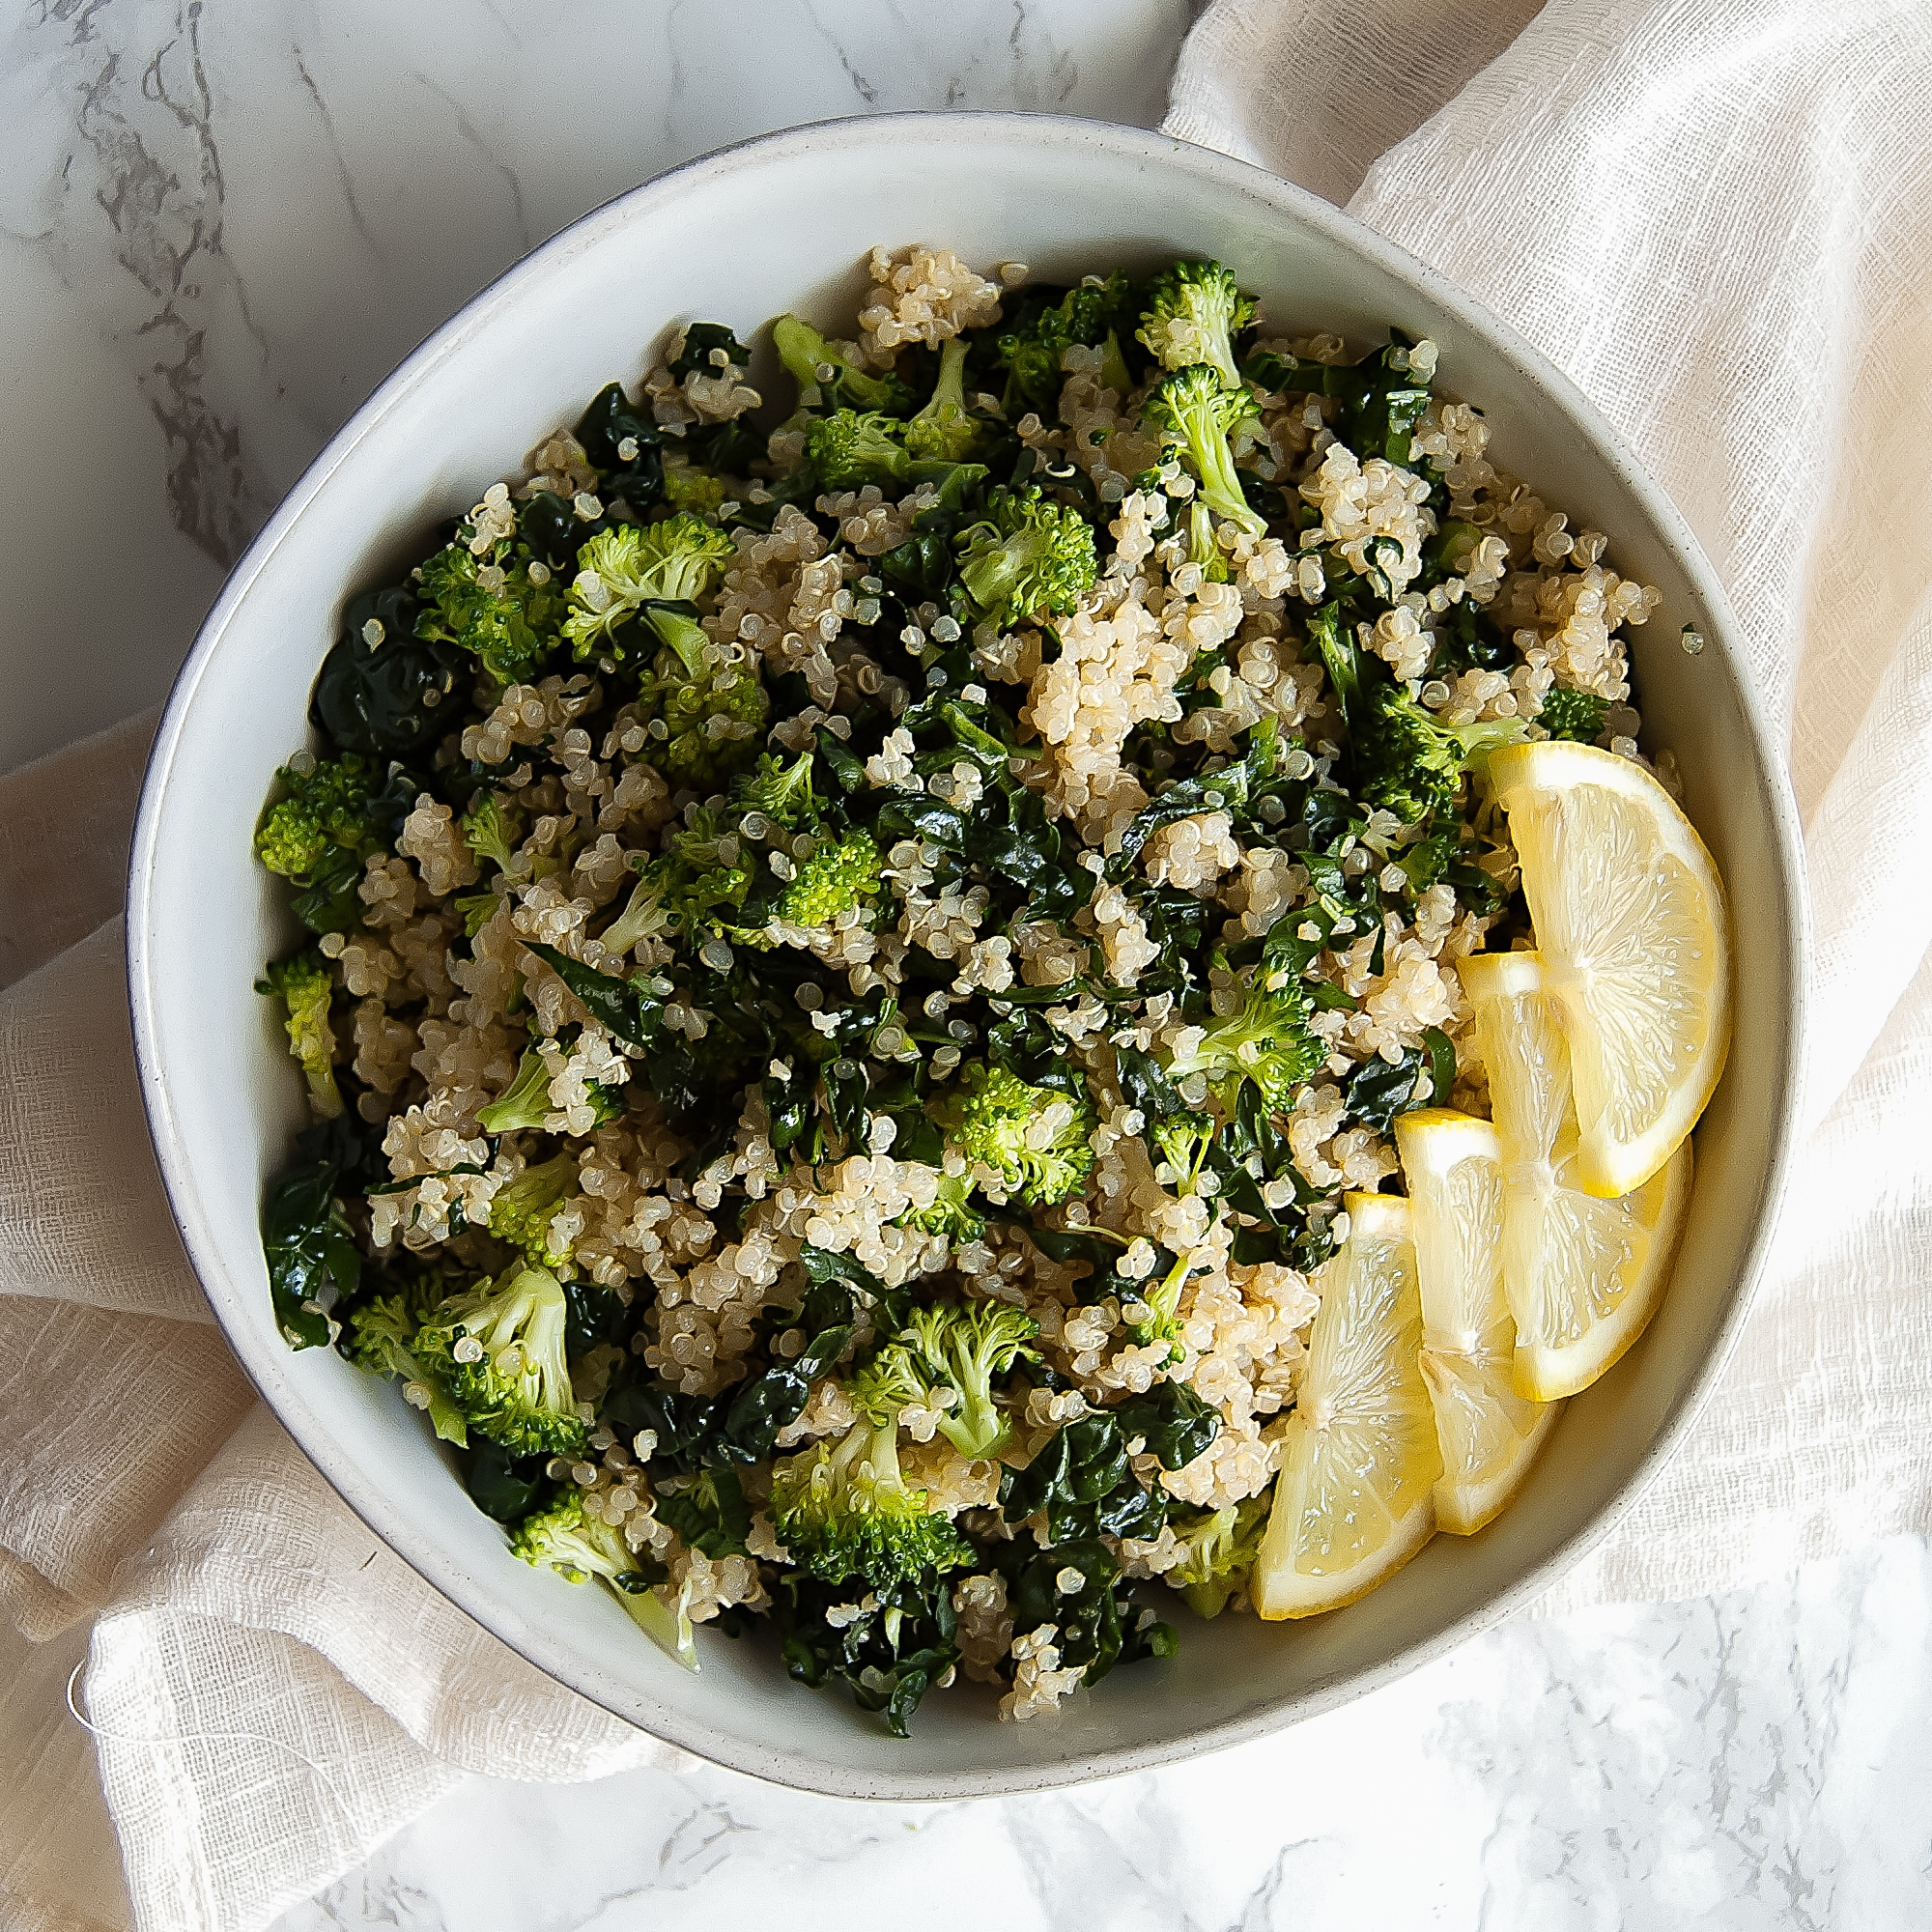 This 5-Minute Broccoli Kale Quinoa Salad is a deliciously light and healthy grain salad. It's packed with nutrients and is naturally gluten-free and free of all of the top 8 most common food allergens.